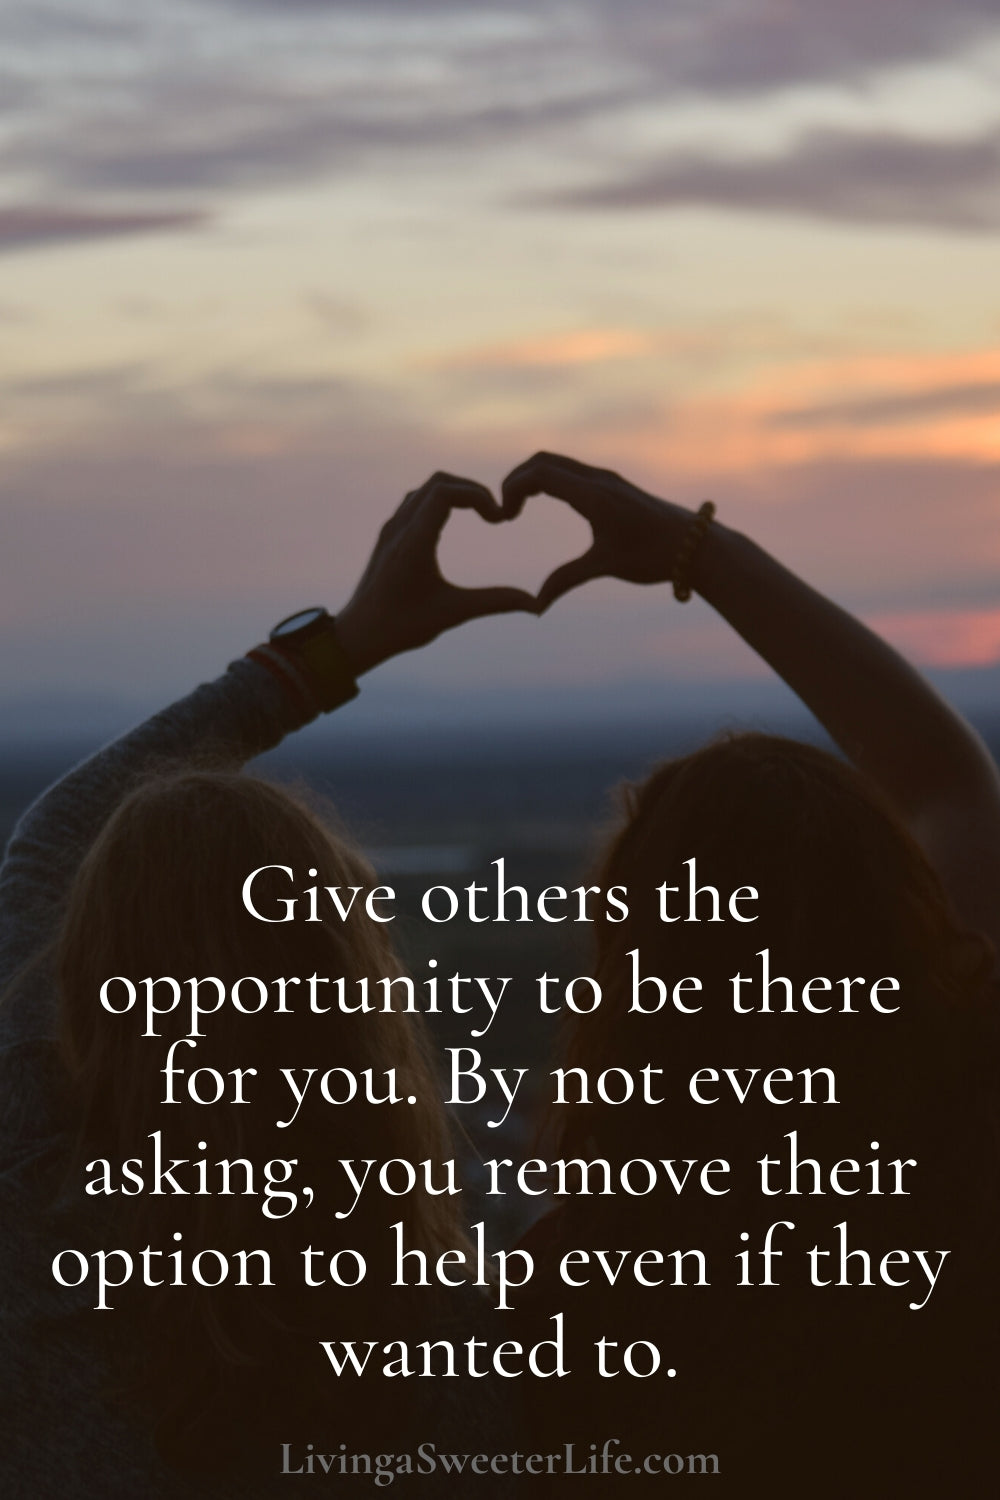 how to get your life together - ask for help from loved ones - living a sweeter life blog